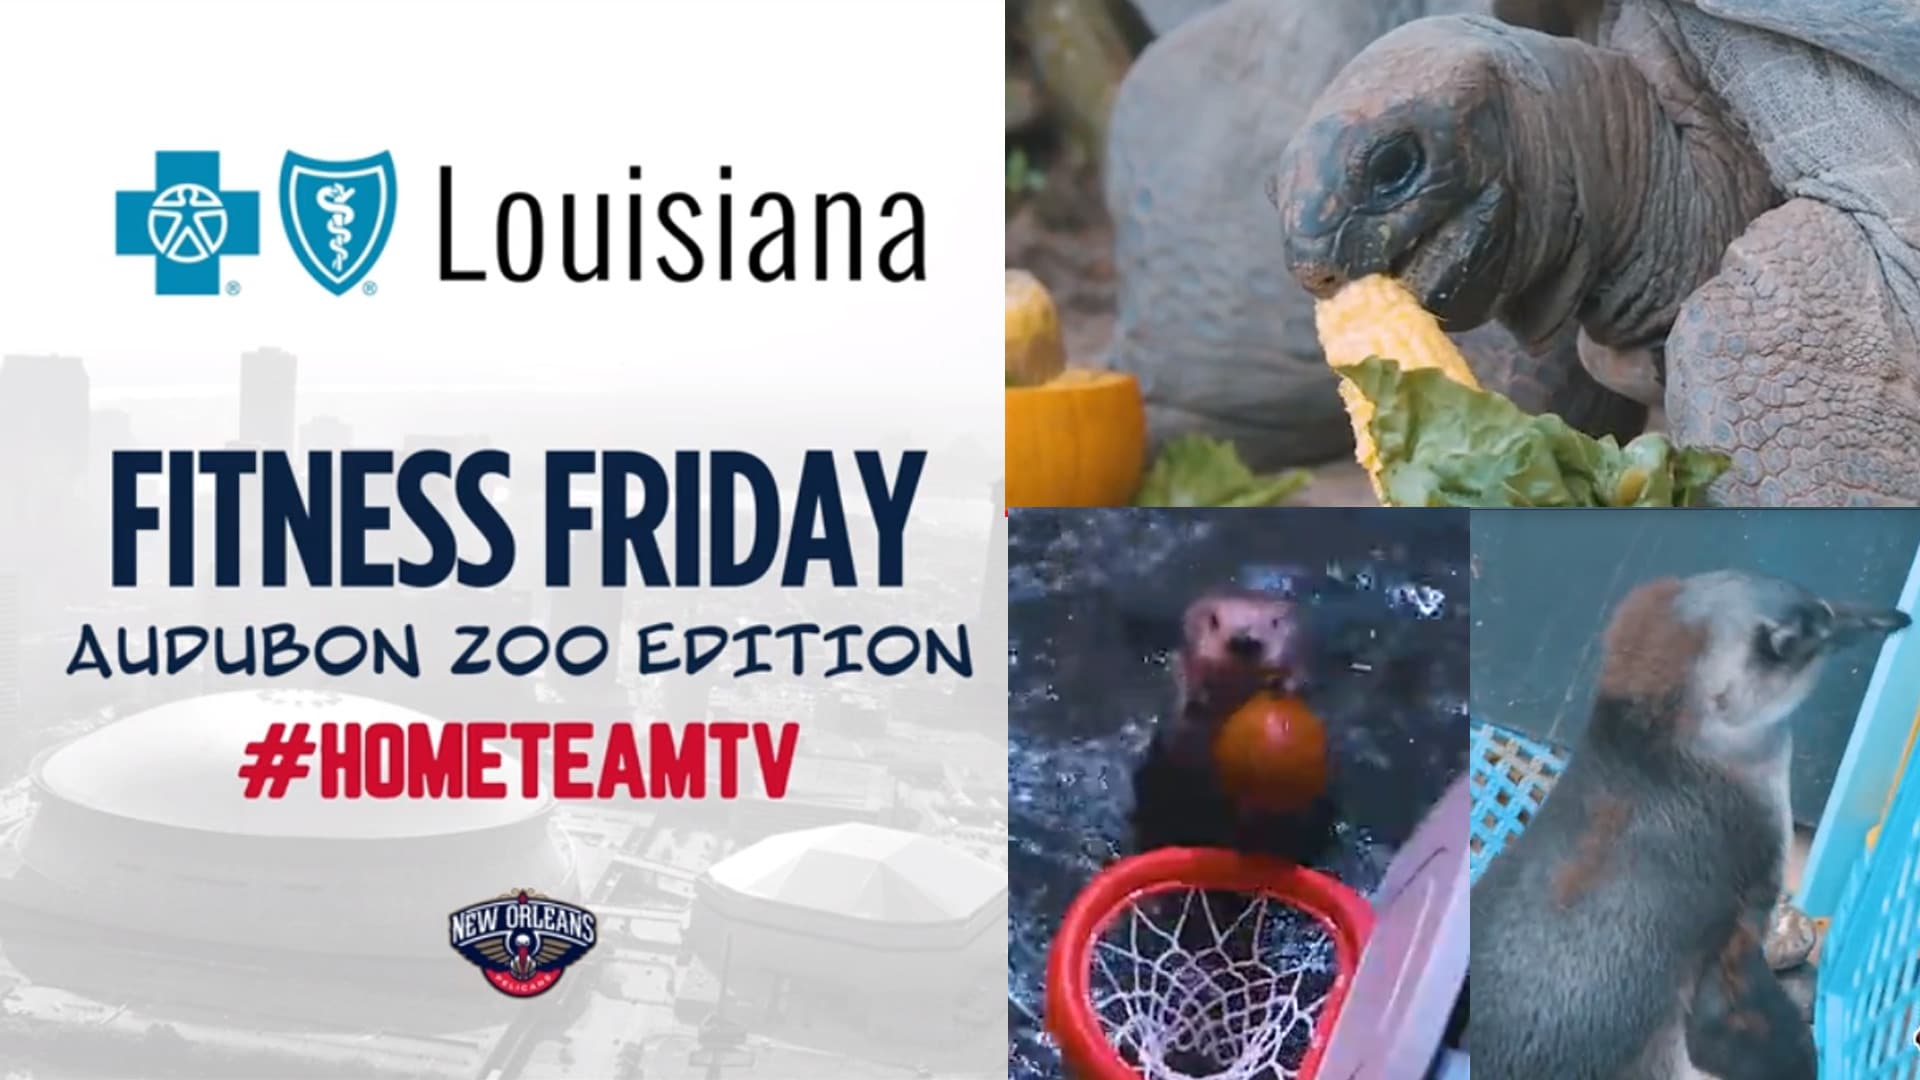 HomeTeamTV: Fitness Friday tips with Audubon Nature Institute animals